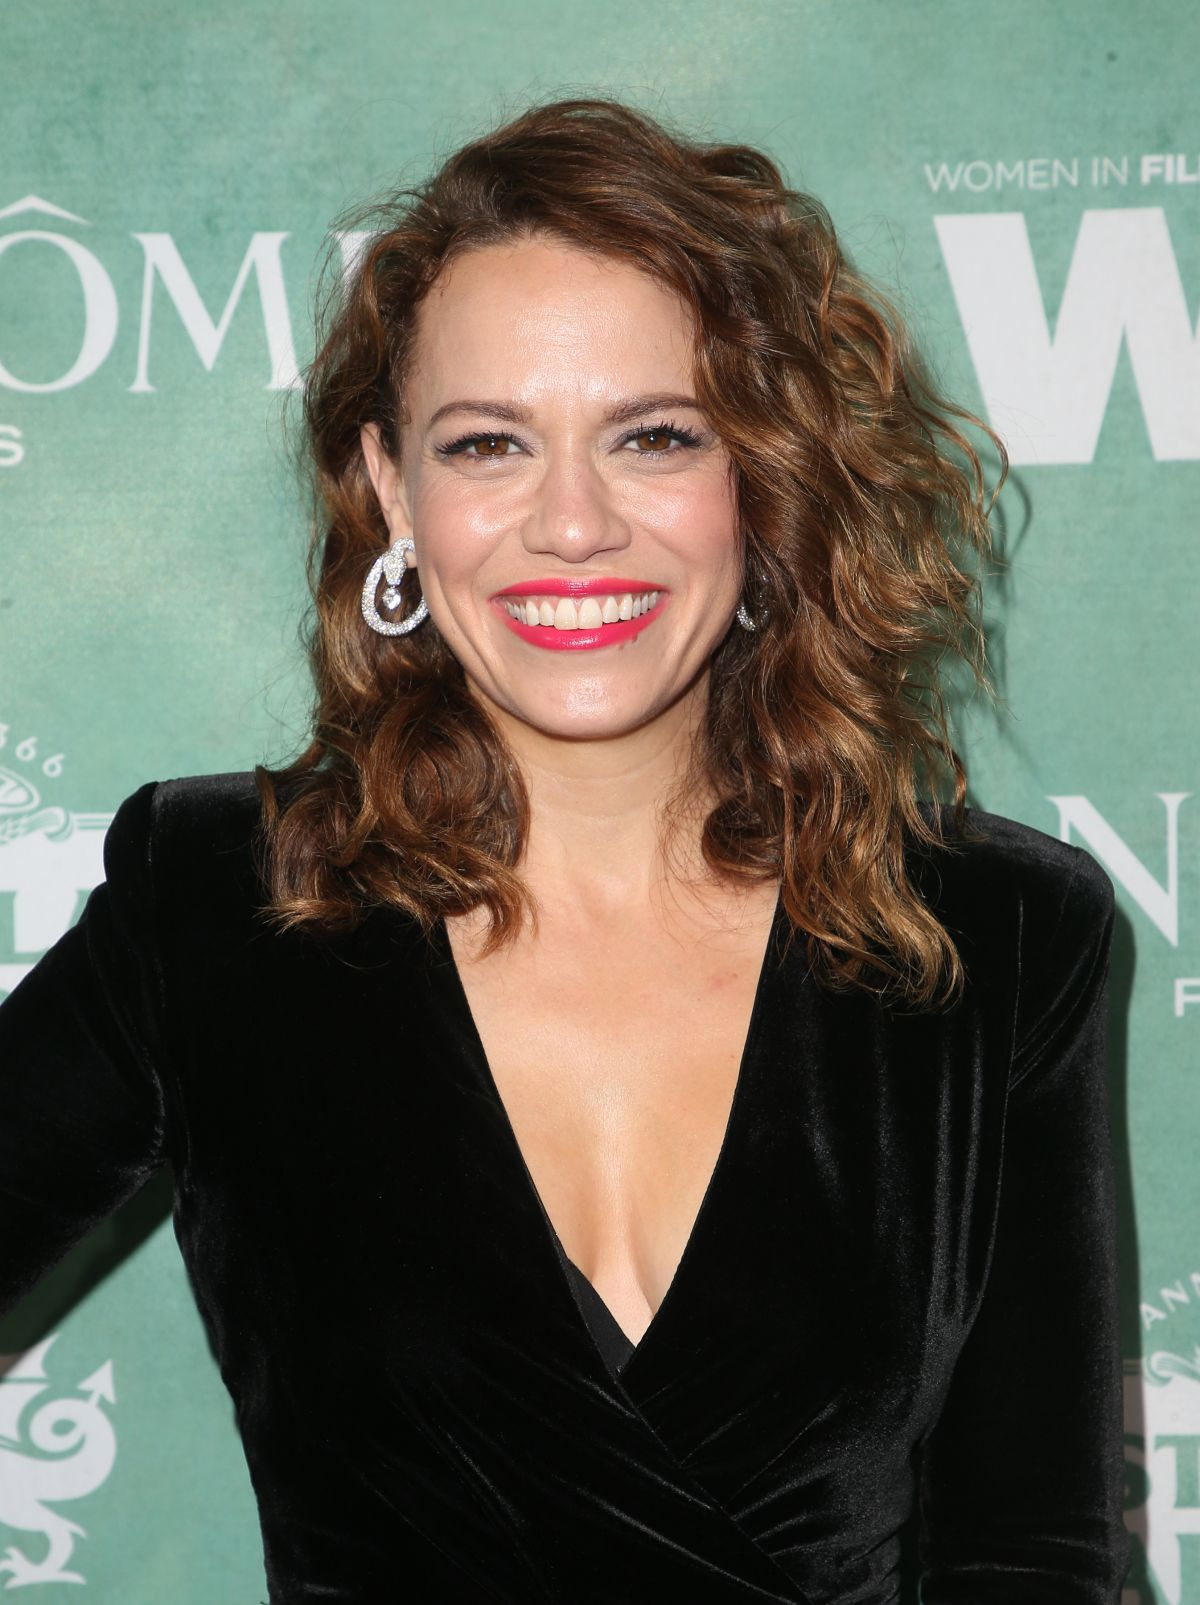 Bethany Joy Lenz naked (74 foto and video), Sexy, Cleavage, Twitter, cameltoe 2019